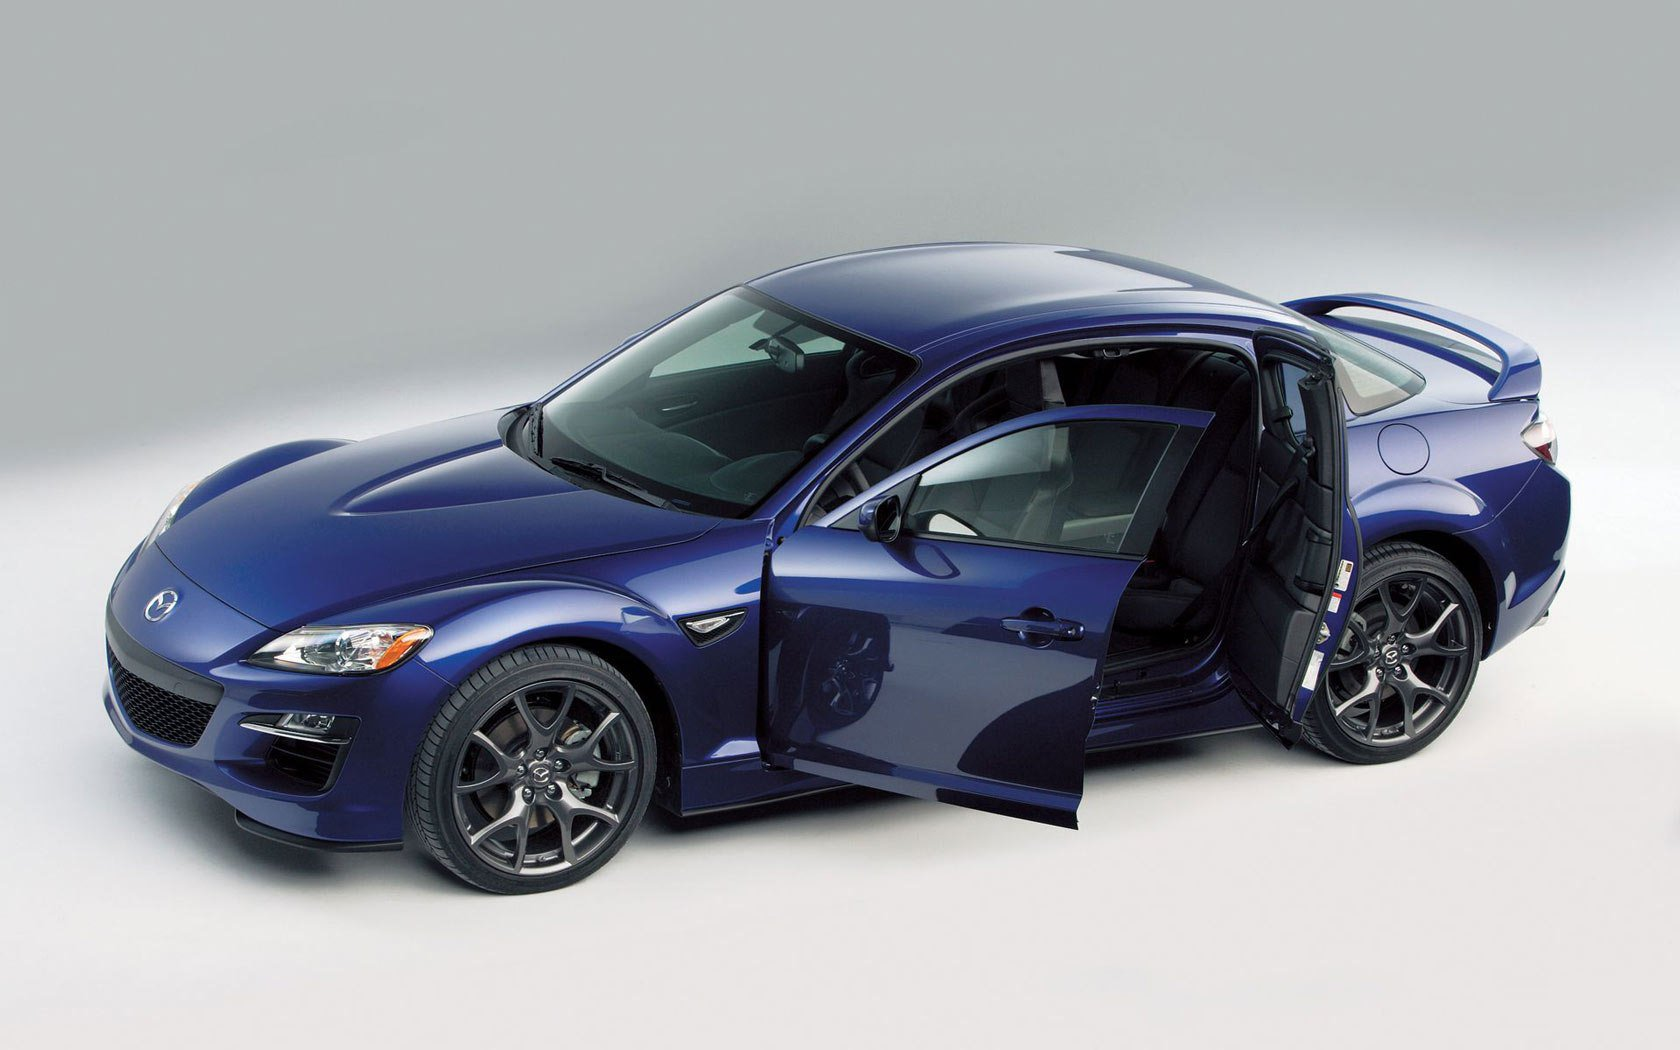 hight resolution of own a mazda rx8 here are few general maintenance tips for your rotary engine